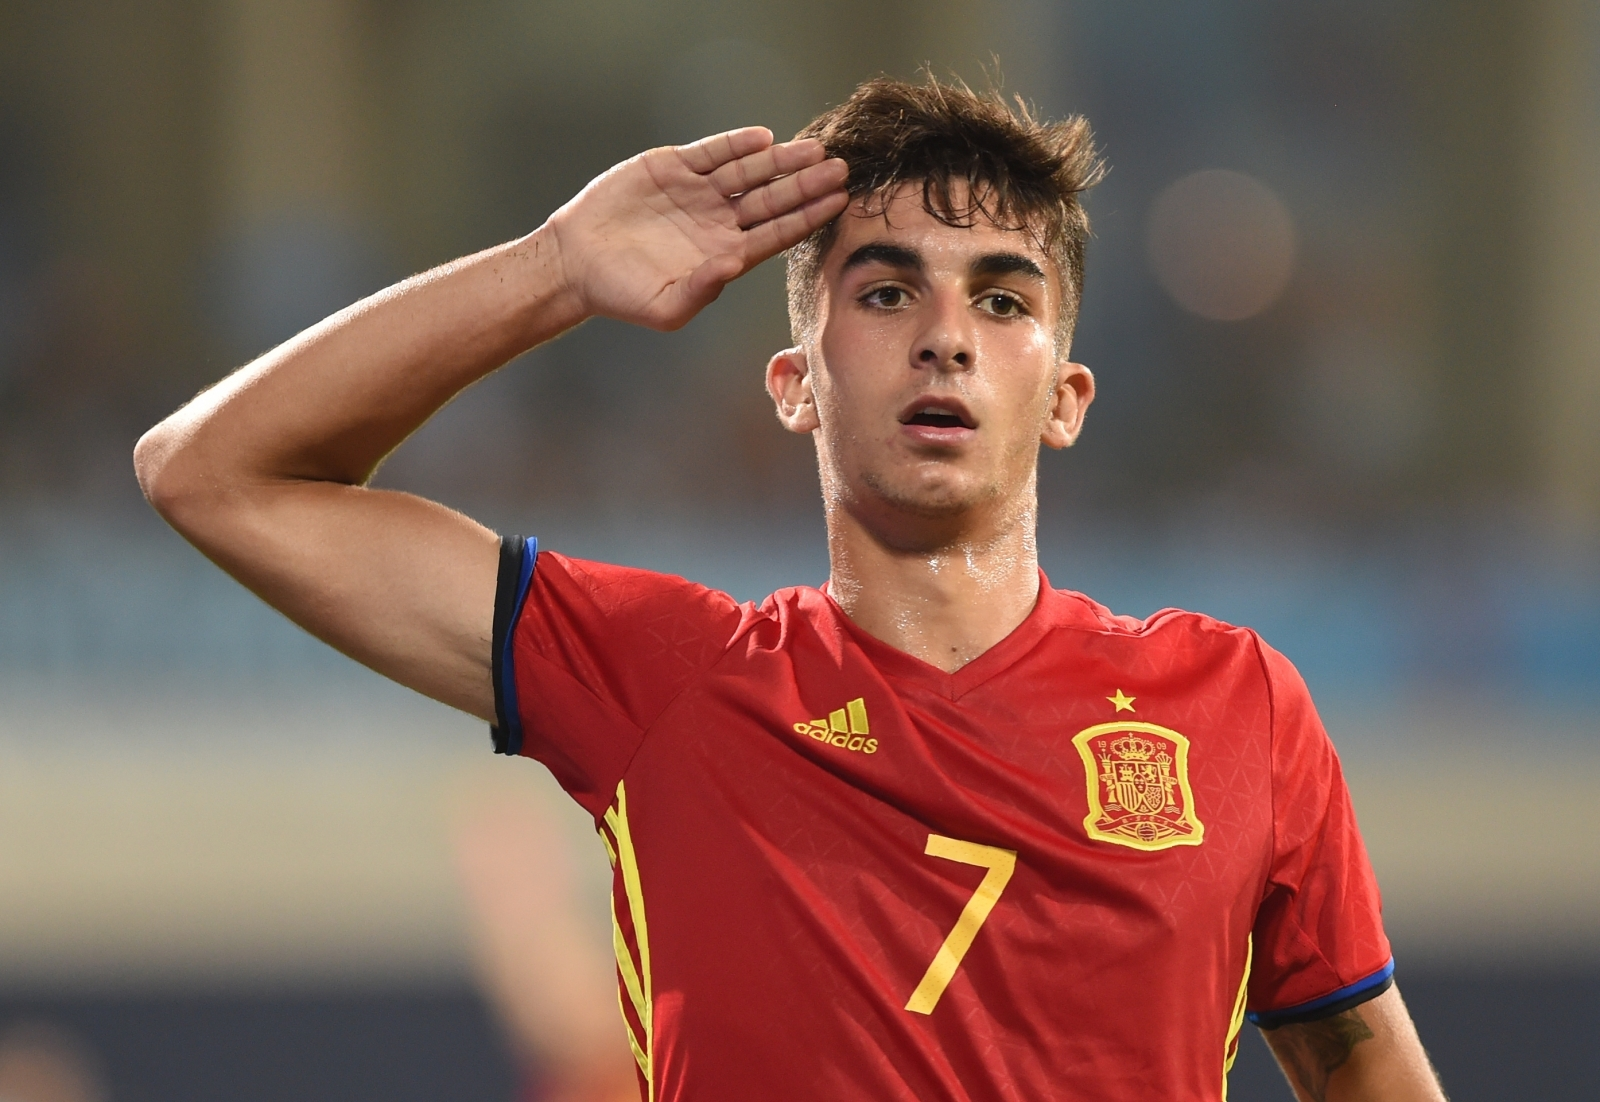 Barcelona 'keep scouting' Spain Under-17 international